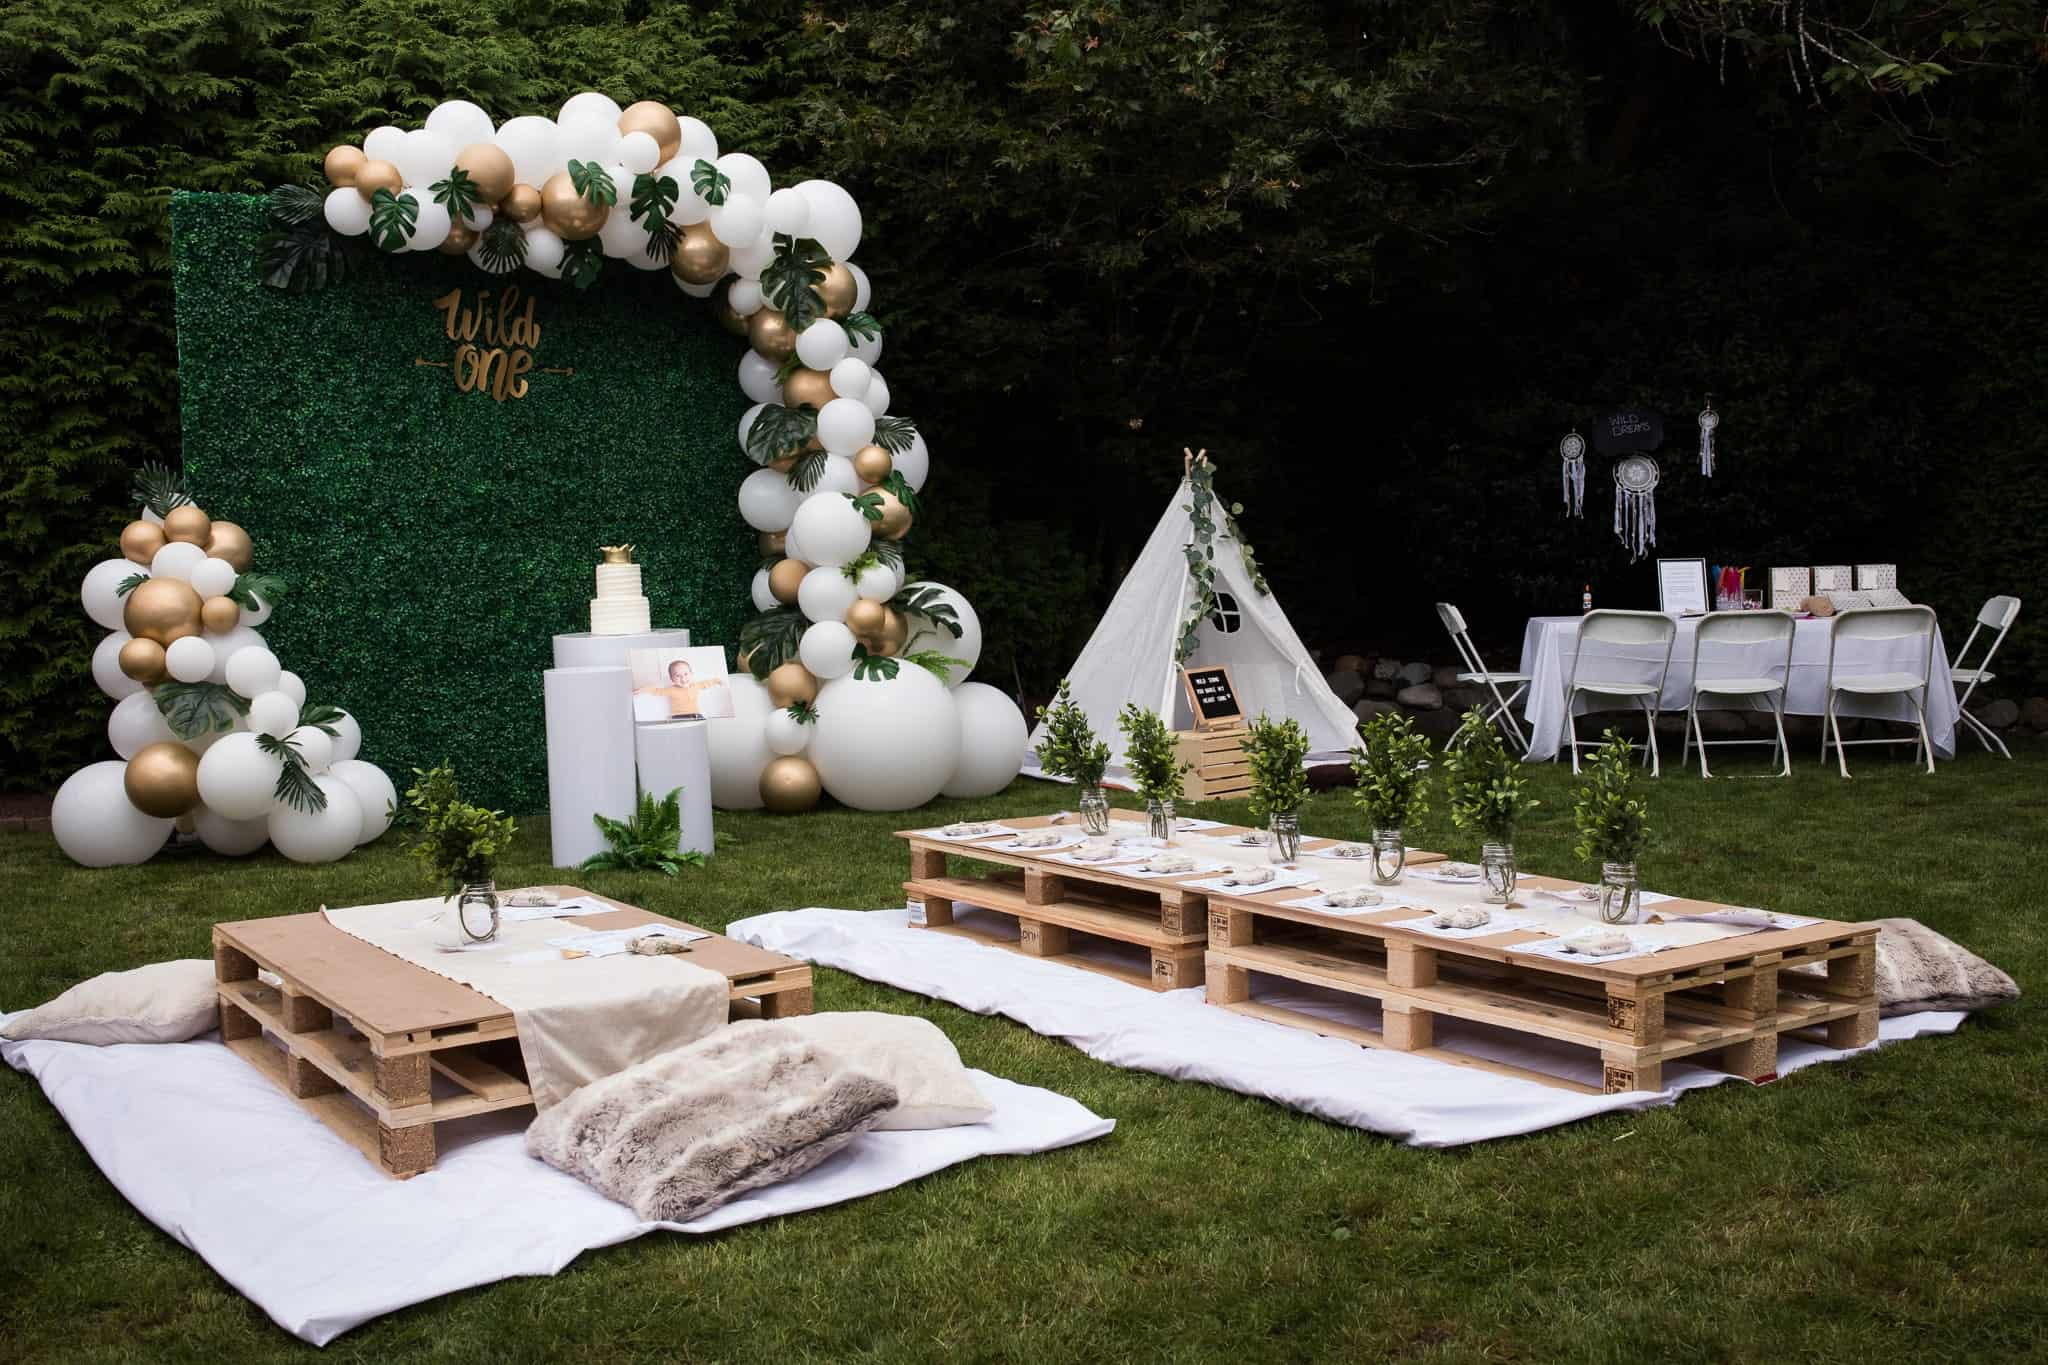 backyard decorated for first birthday party